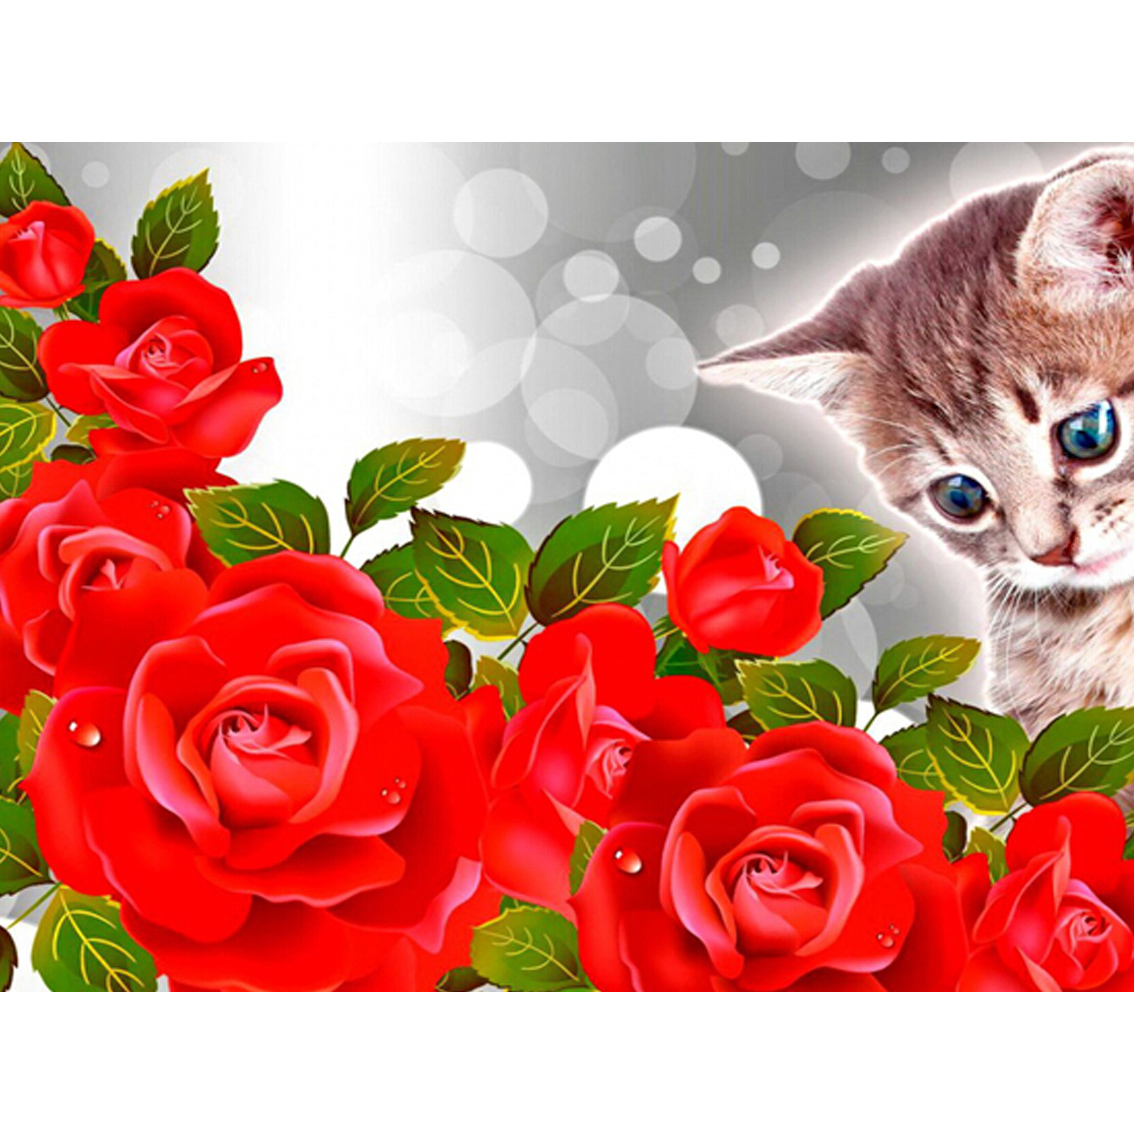 HZW-476 Western Style home decor 5D square Diy Diamond Painting Embroidery Flowers and cats living room sticker 40X30CM